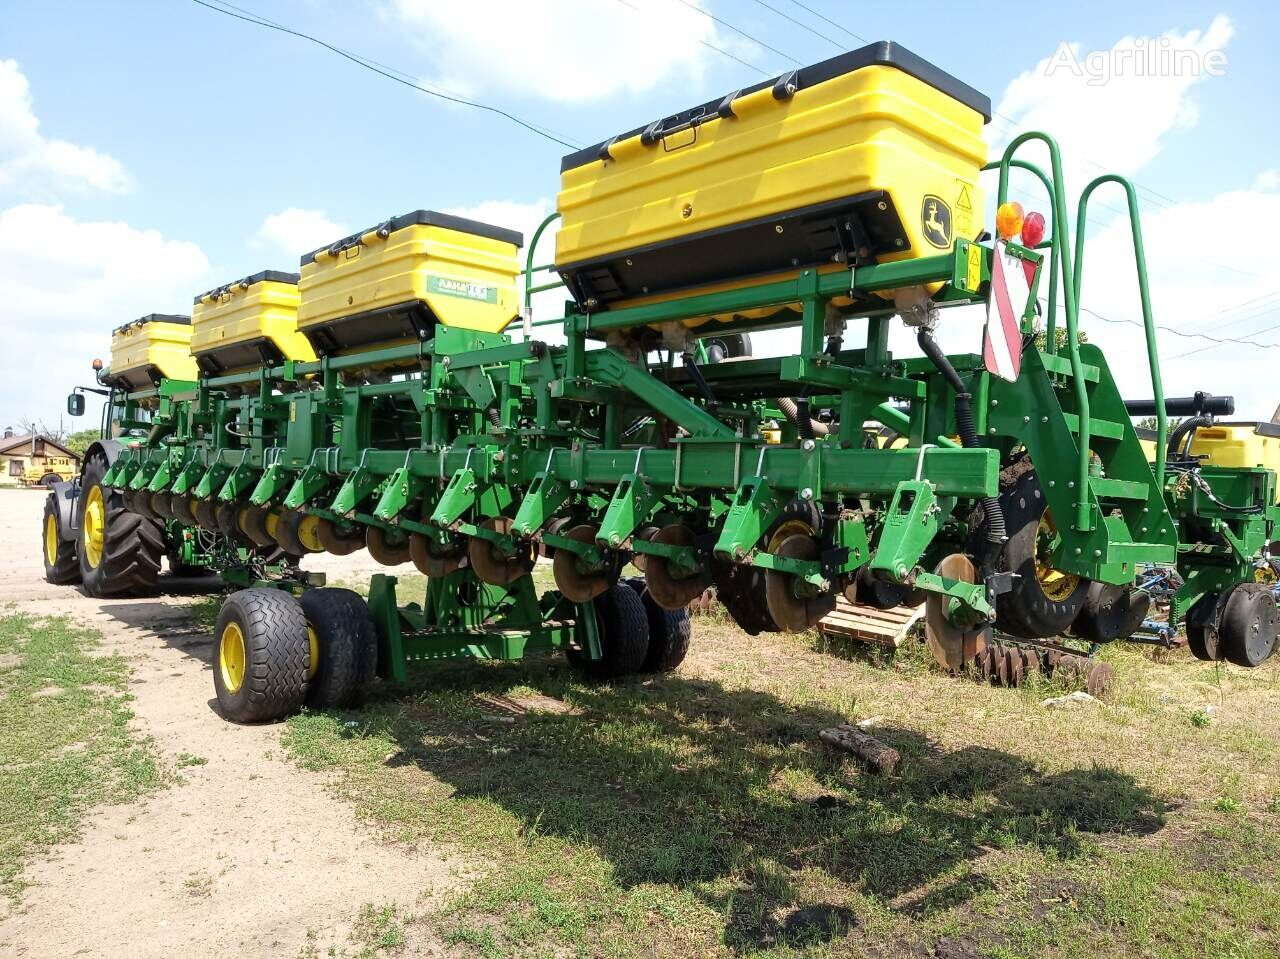 JOHN DEERE 1745 mechanical precision seed drill